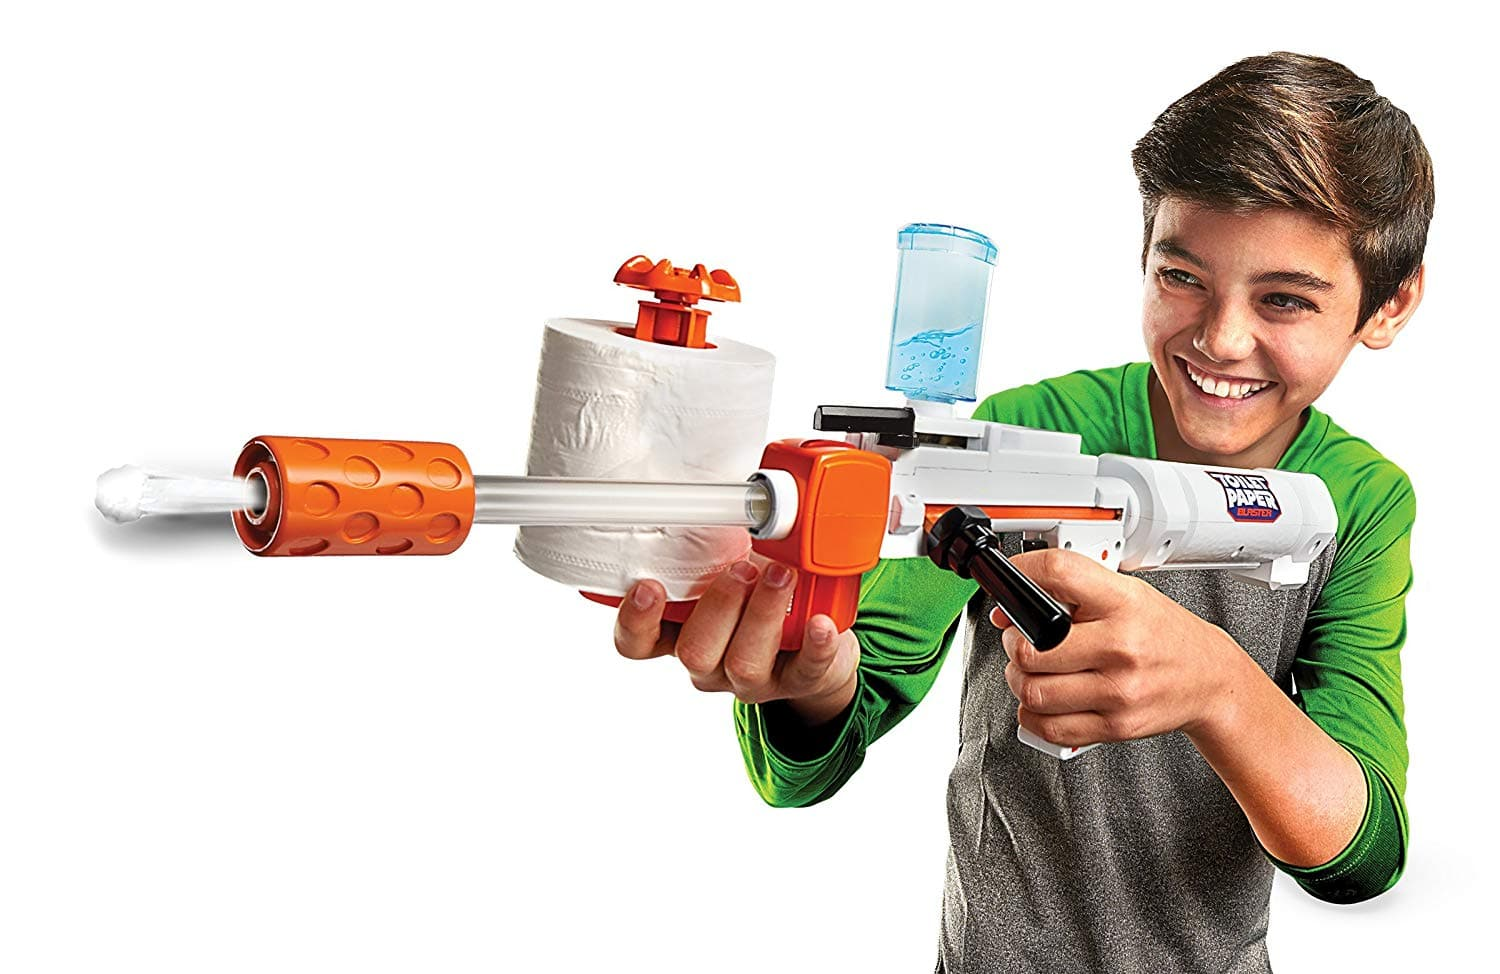 Jakks Pacific Toilet Paper Blaster Skid Shot for $10